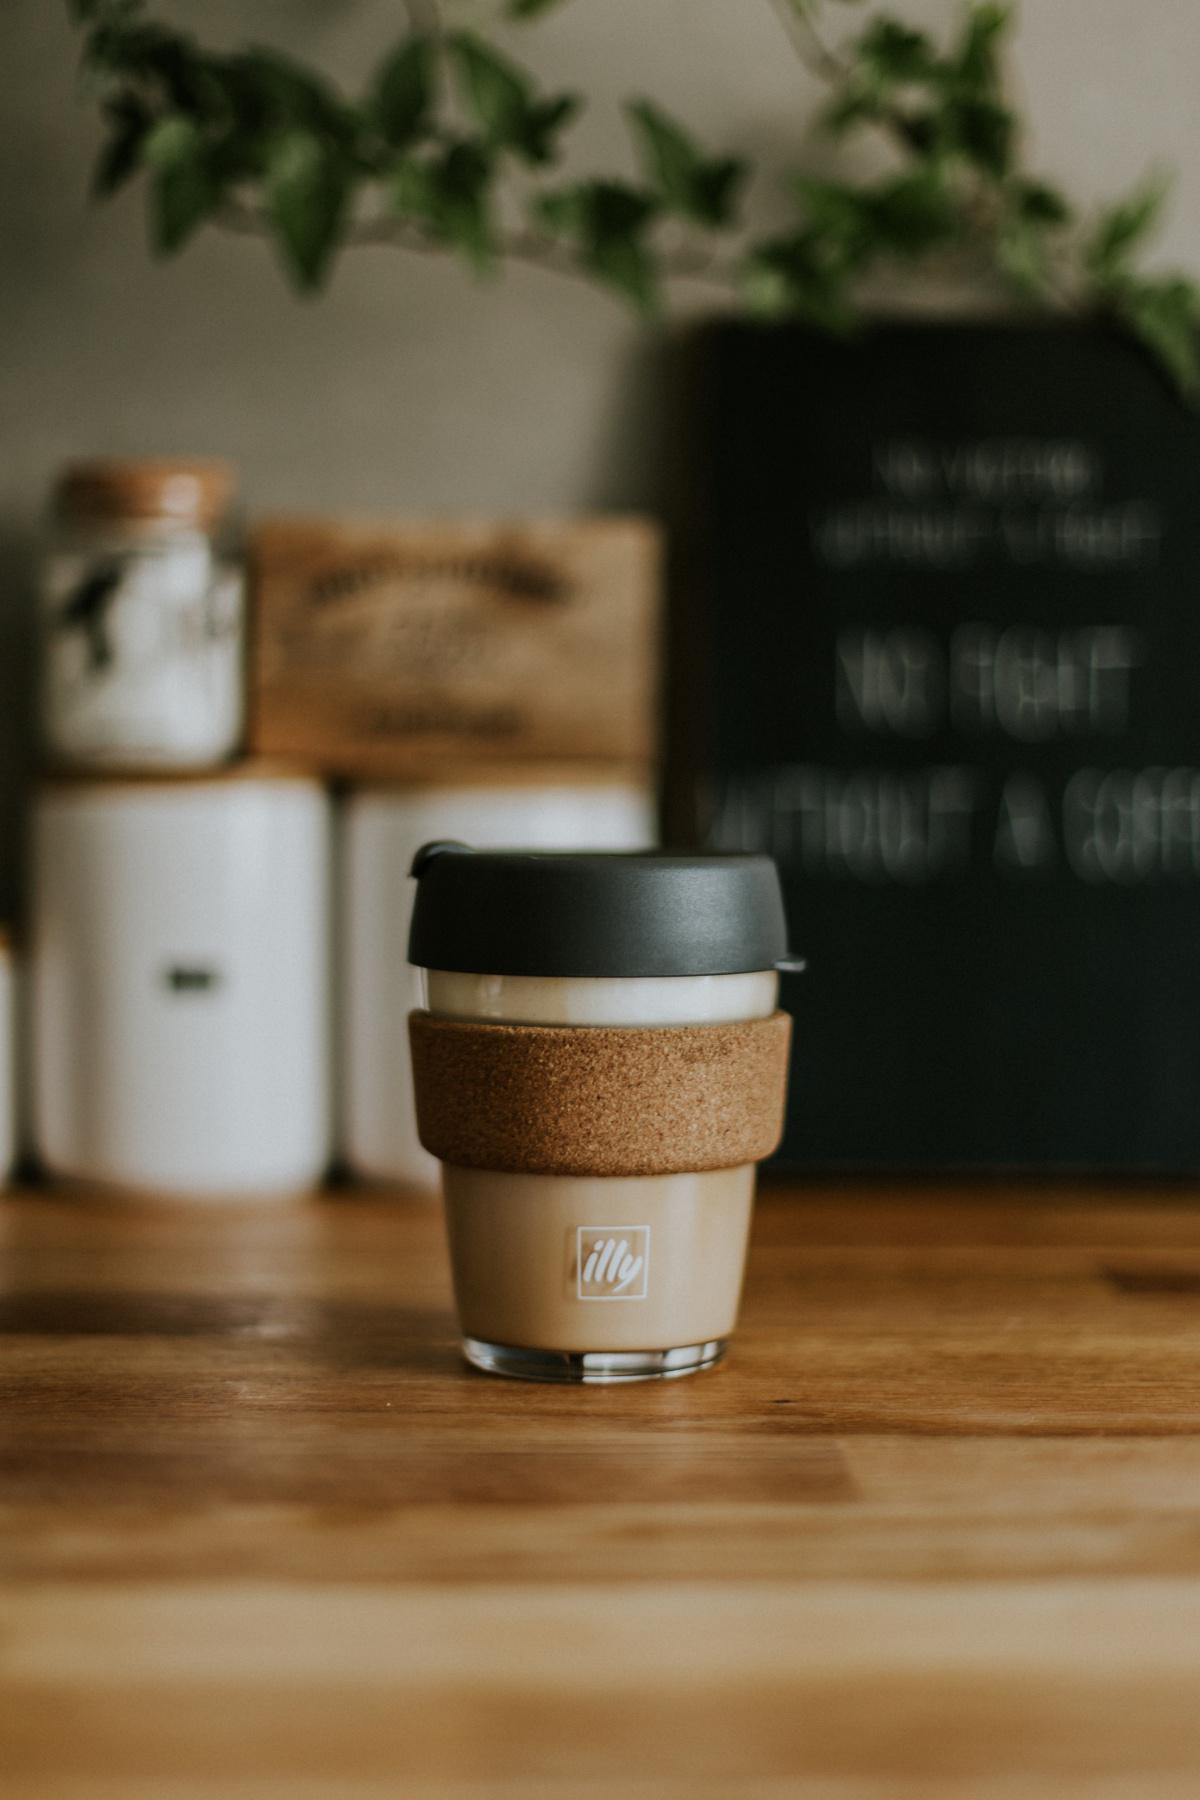 Melbourne Social Media Series: How businesses are pivoting and diversifying their product range during COVID-19 to re-emerge stronger than ever